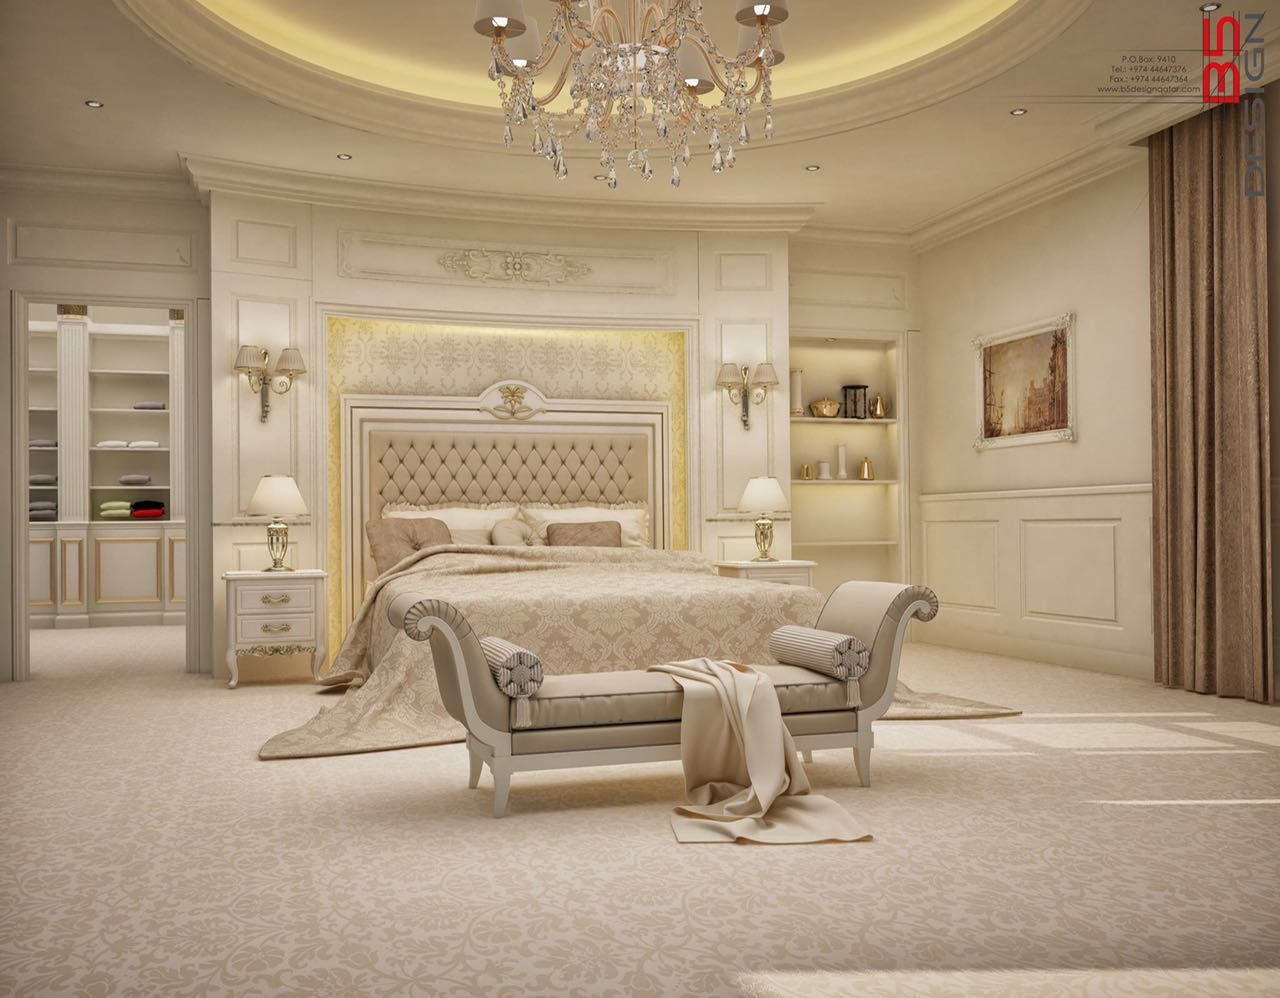 master bedroom design private villa doha qatar on dreamy luxurious master bedroom designs and decor ideas id=37891